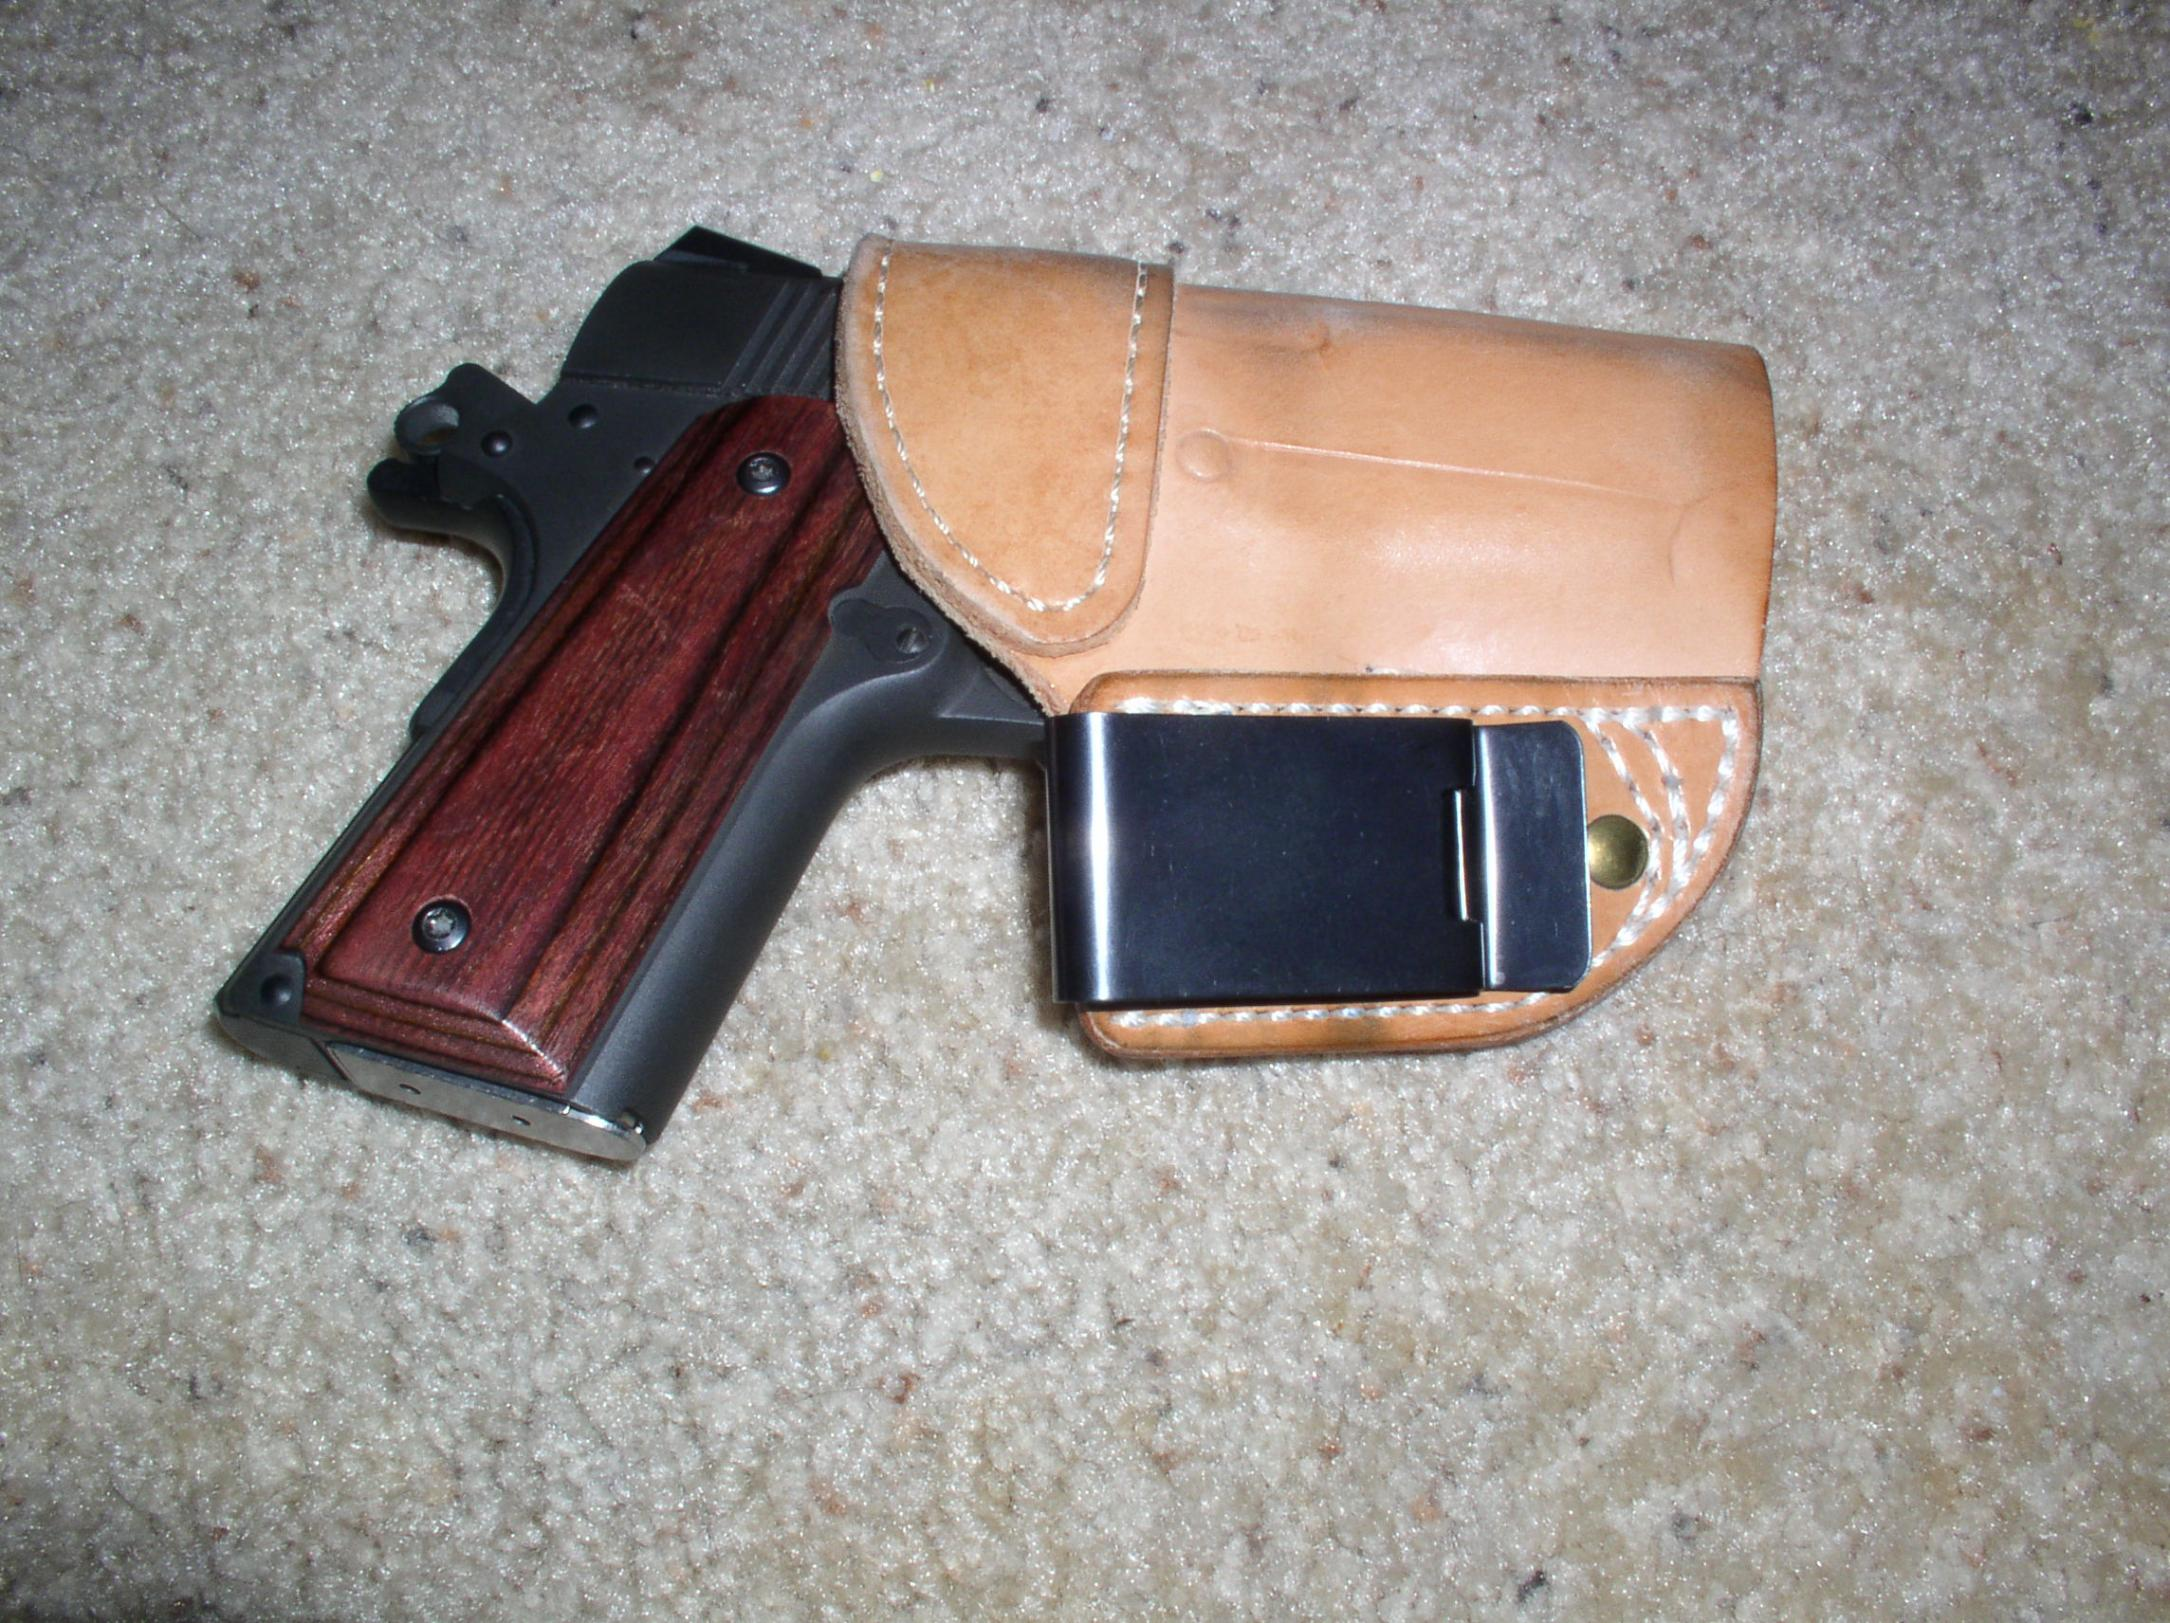 Need some hand holding- want to carry IWB Condition 1 in a hybrid holster!-p1010187.jpg